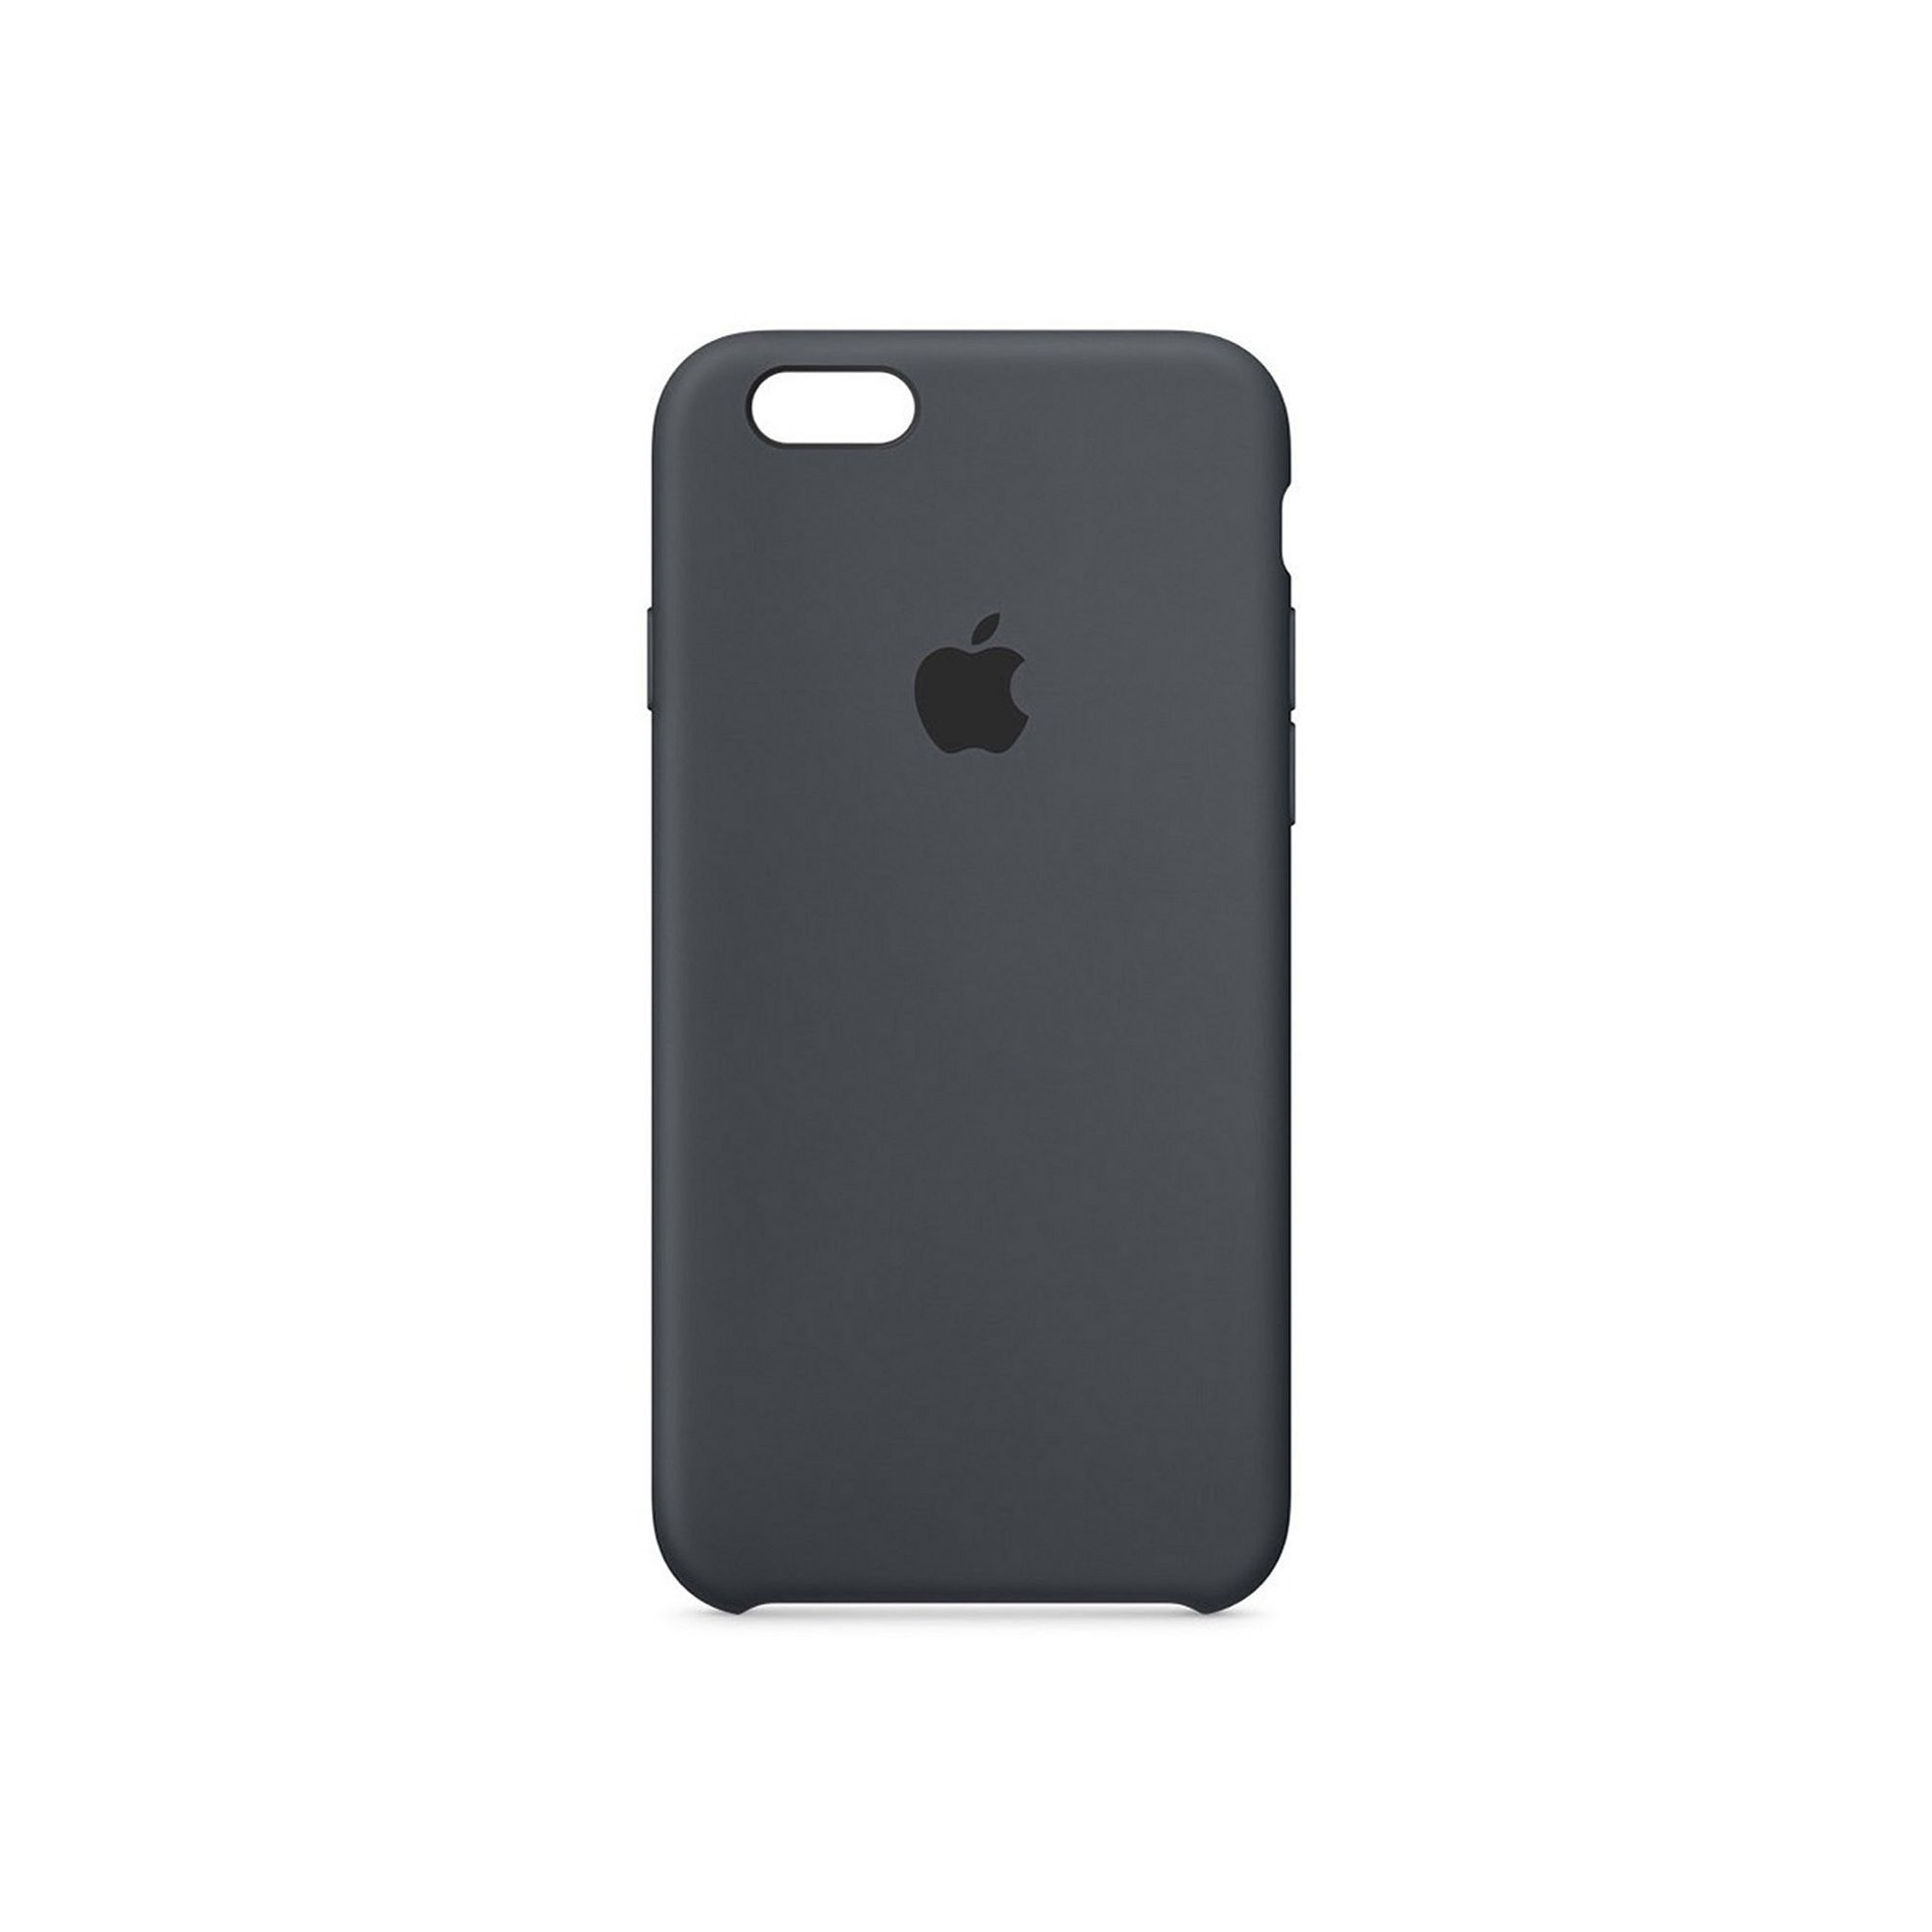 CUSTODIA COVER ORIGINALE Per Apple IPHONE 6/6s SILICONE CASE